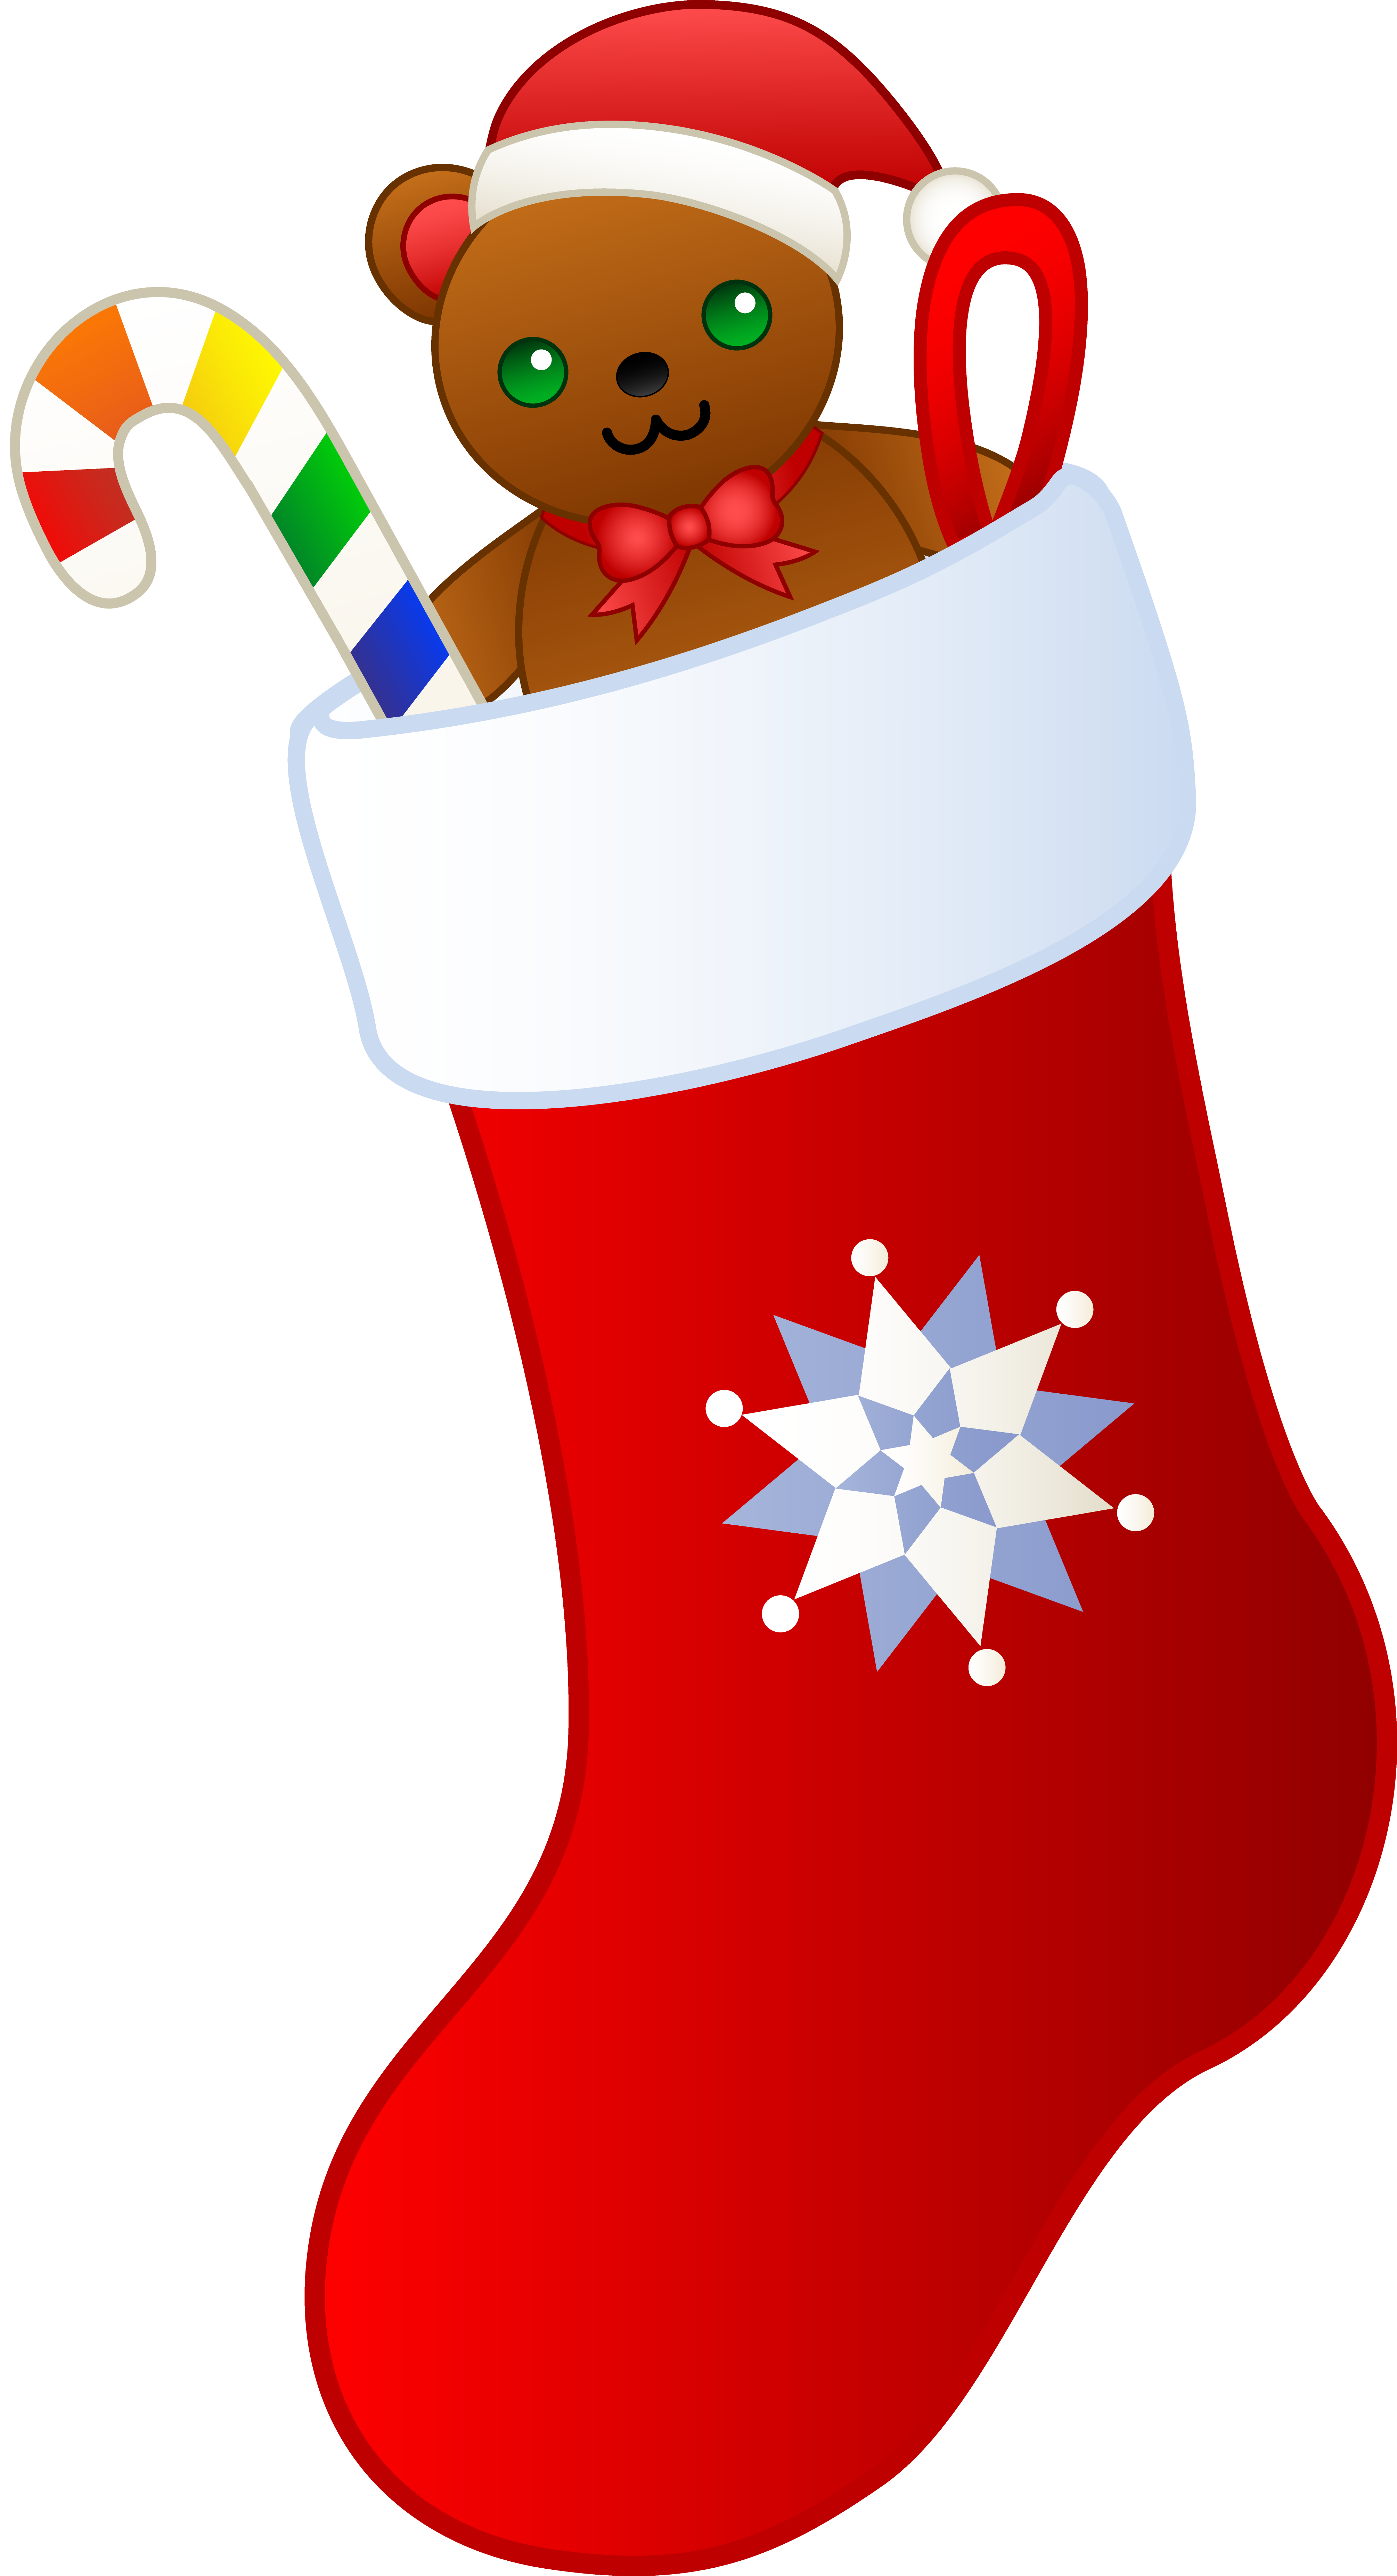 Gingerbread clipart month. Free stocking image download